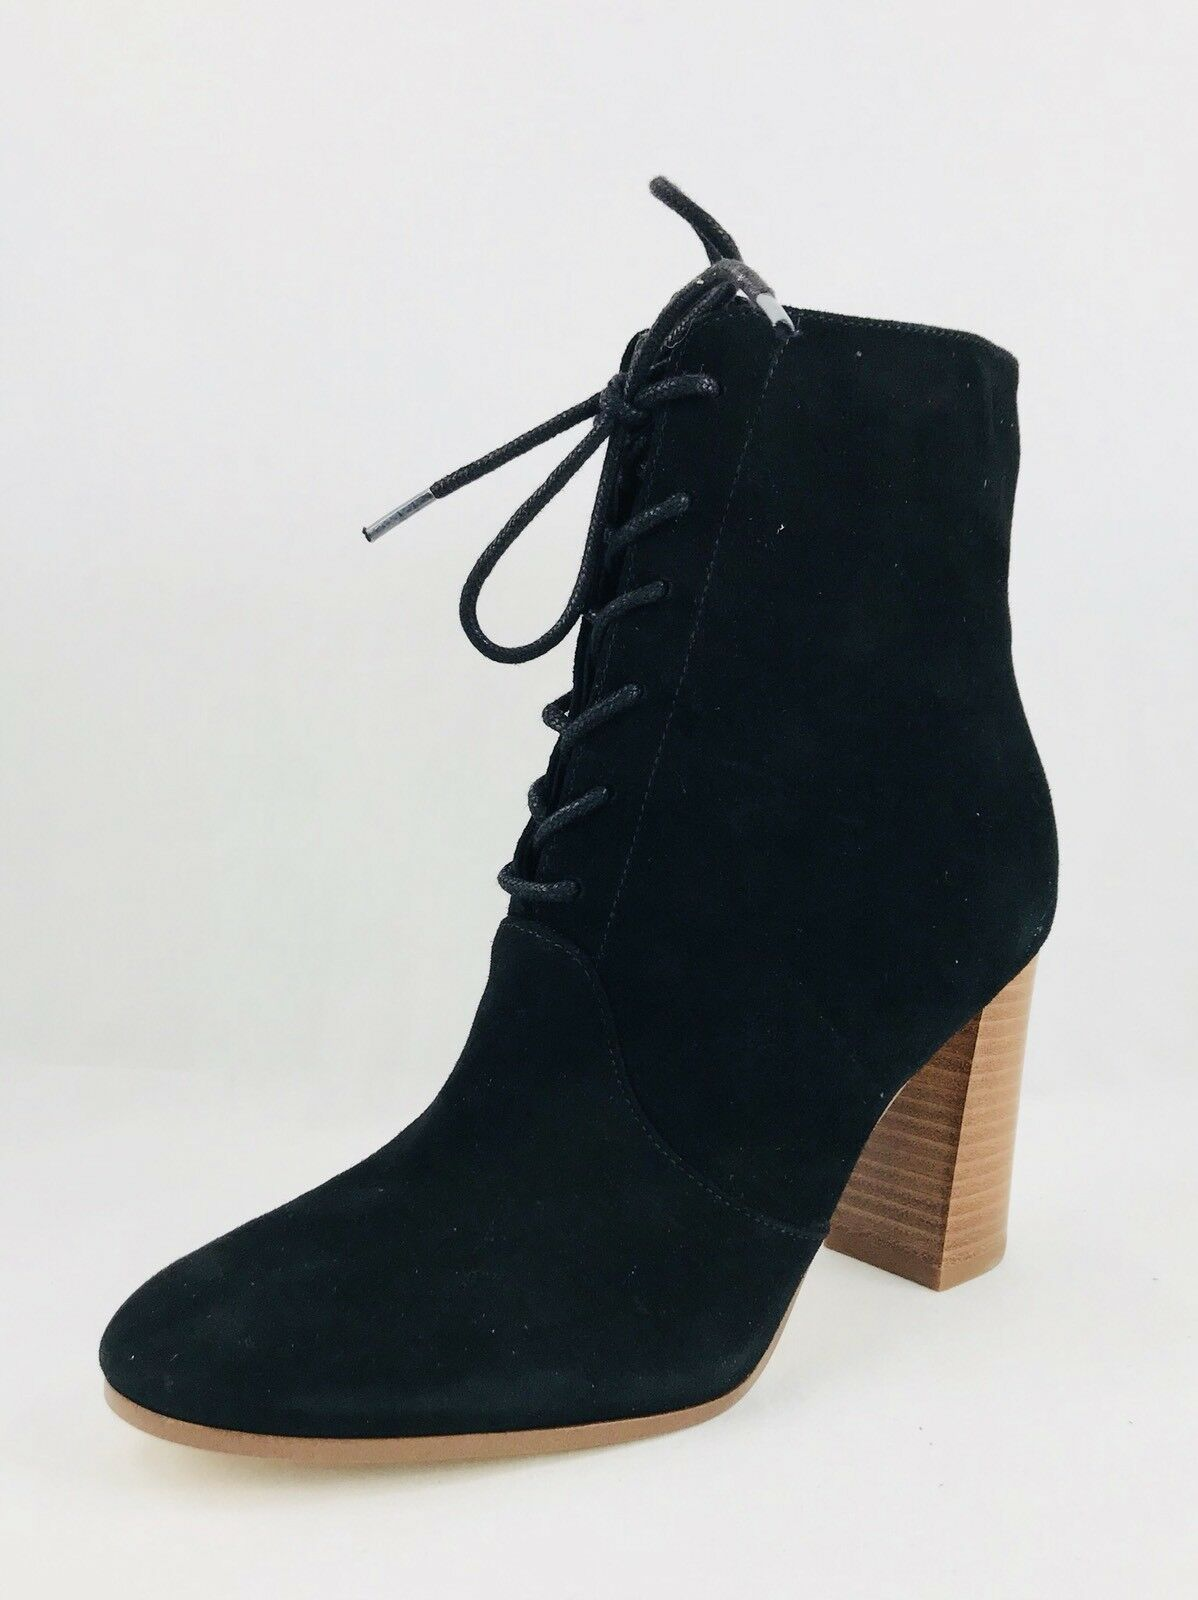 Marc Fisher Edina Block Heel Lace Up Suede Ankle Booties Black Size 6